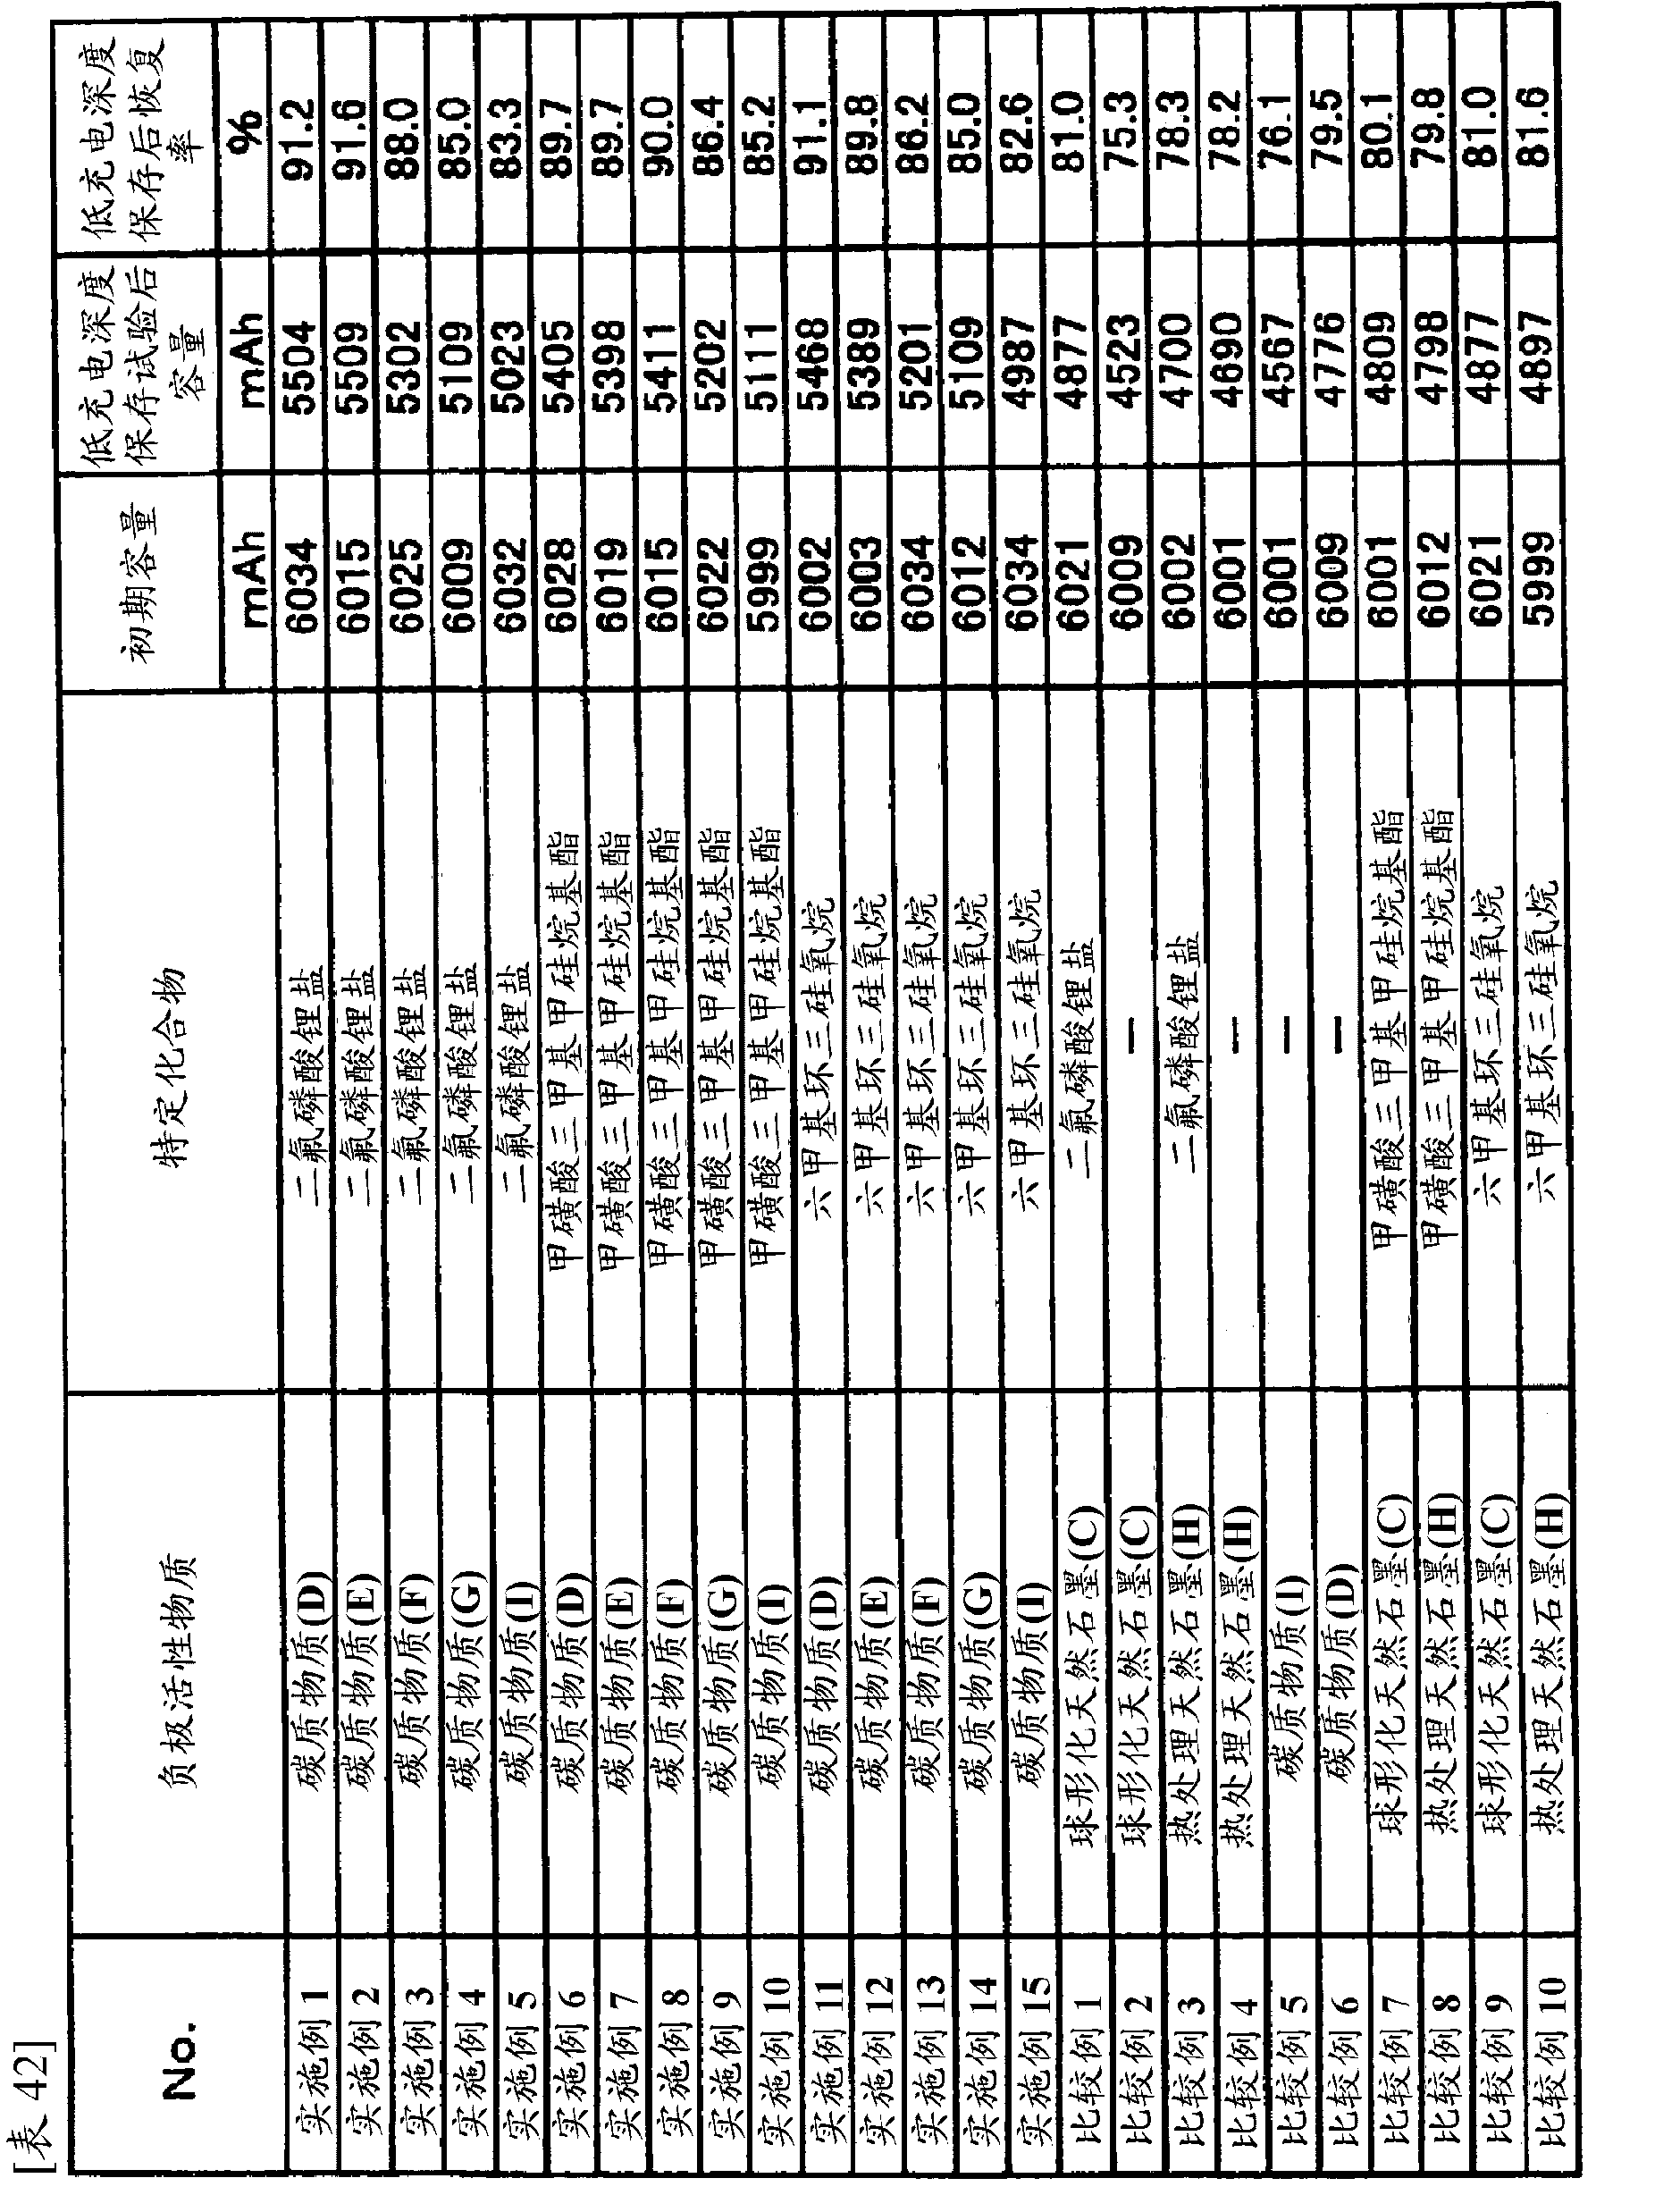 CN102324567A - Lithium secondary battery and non-aqueous electrolyte